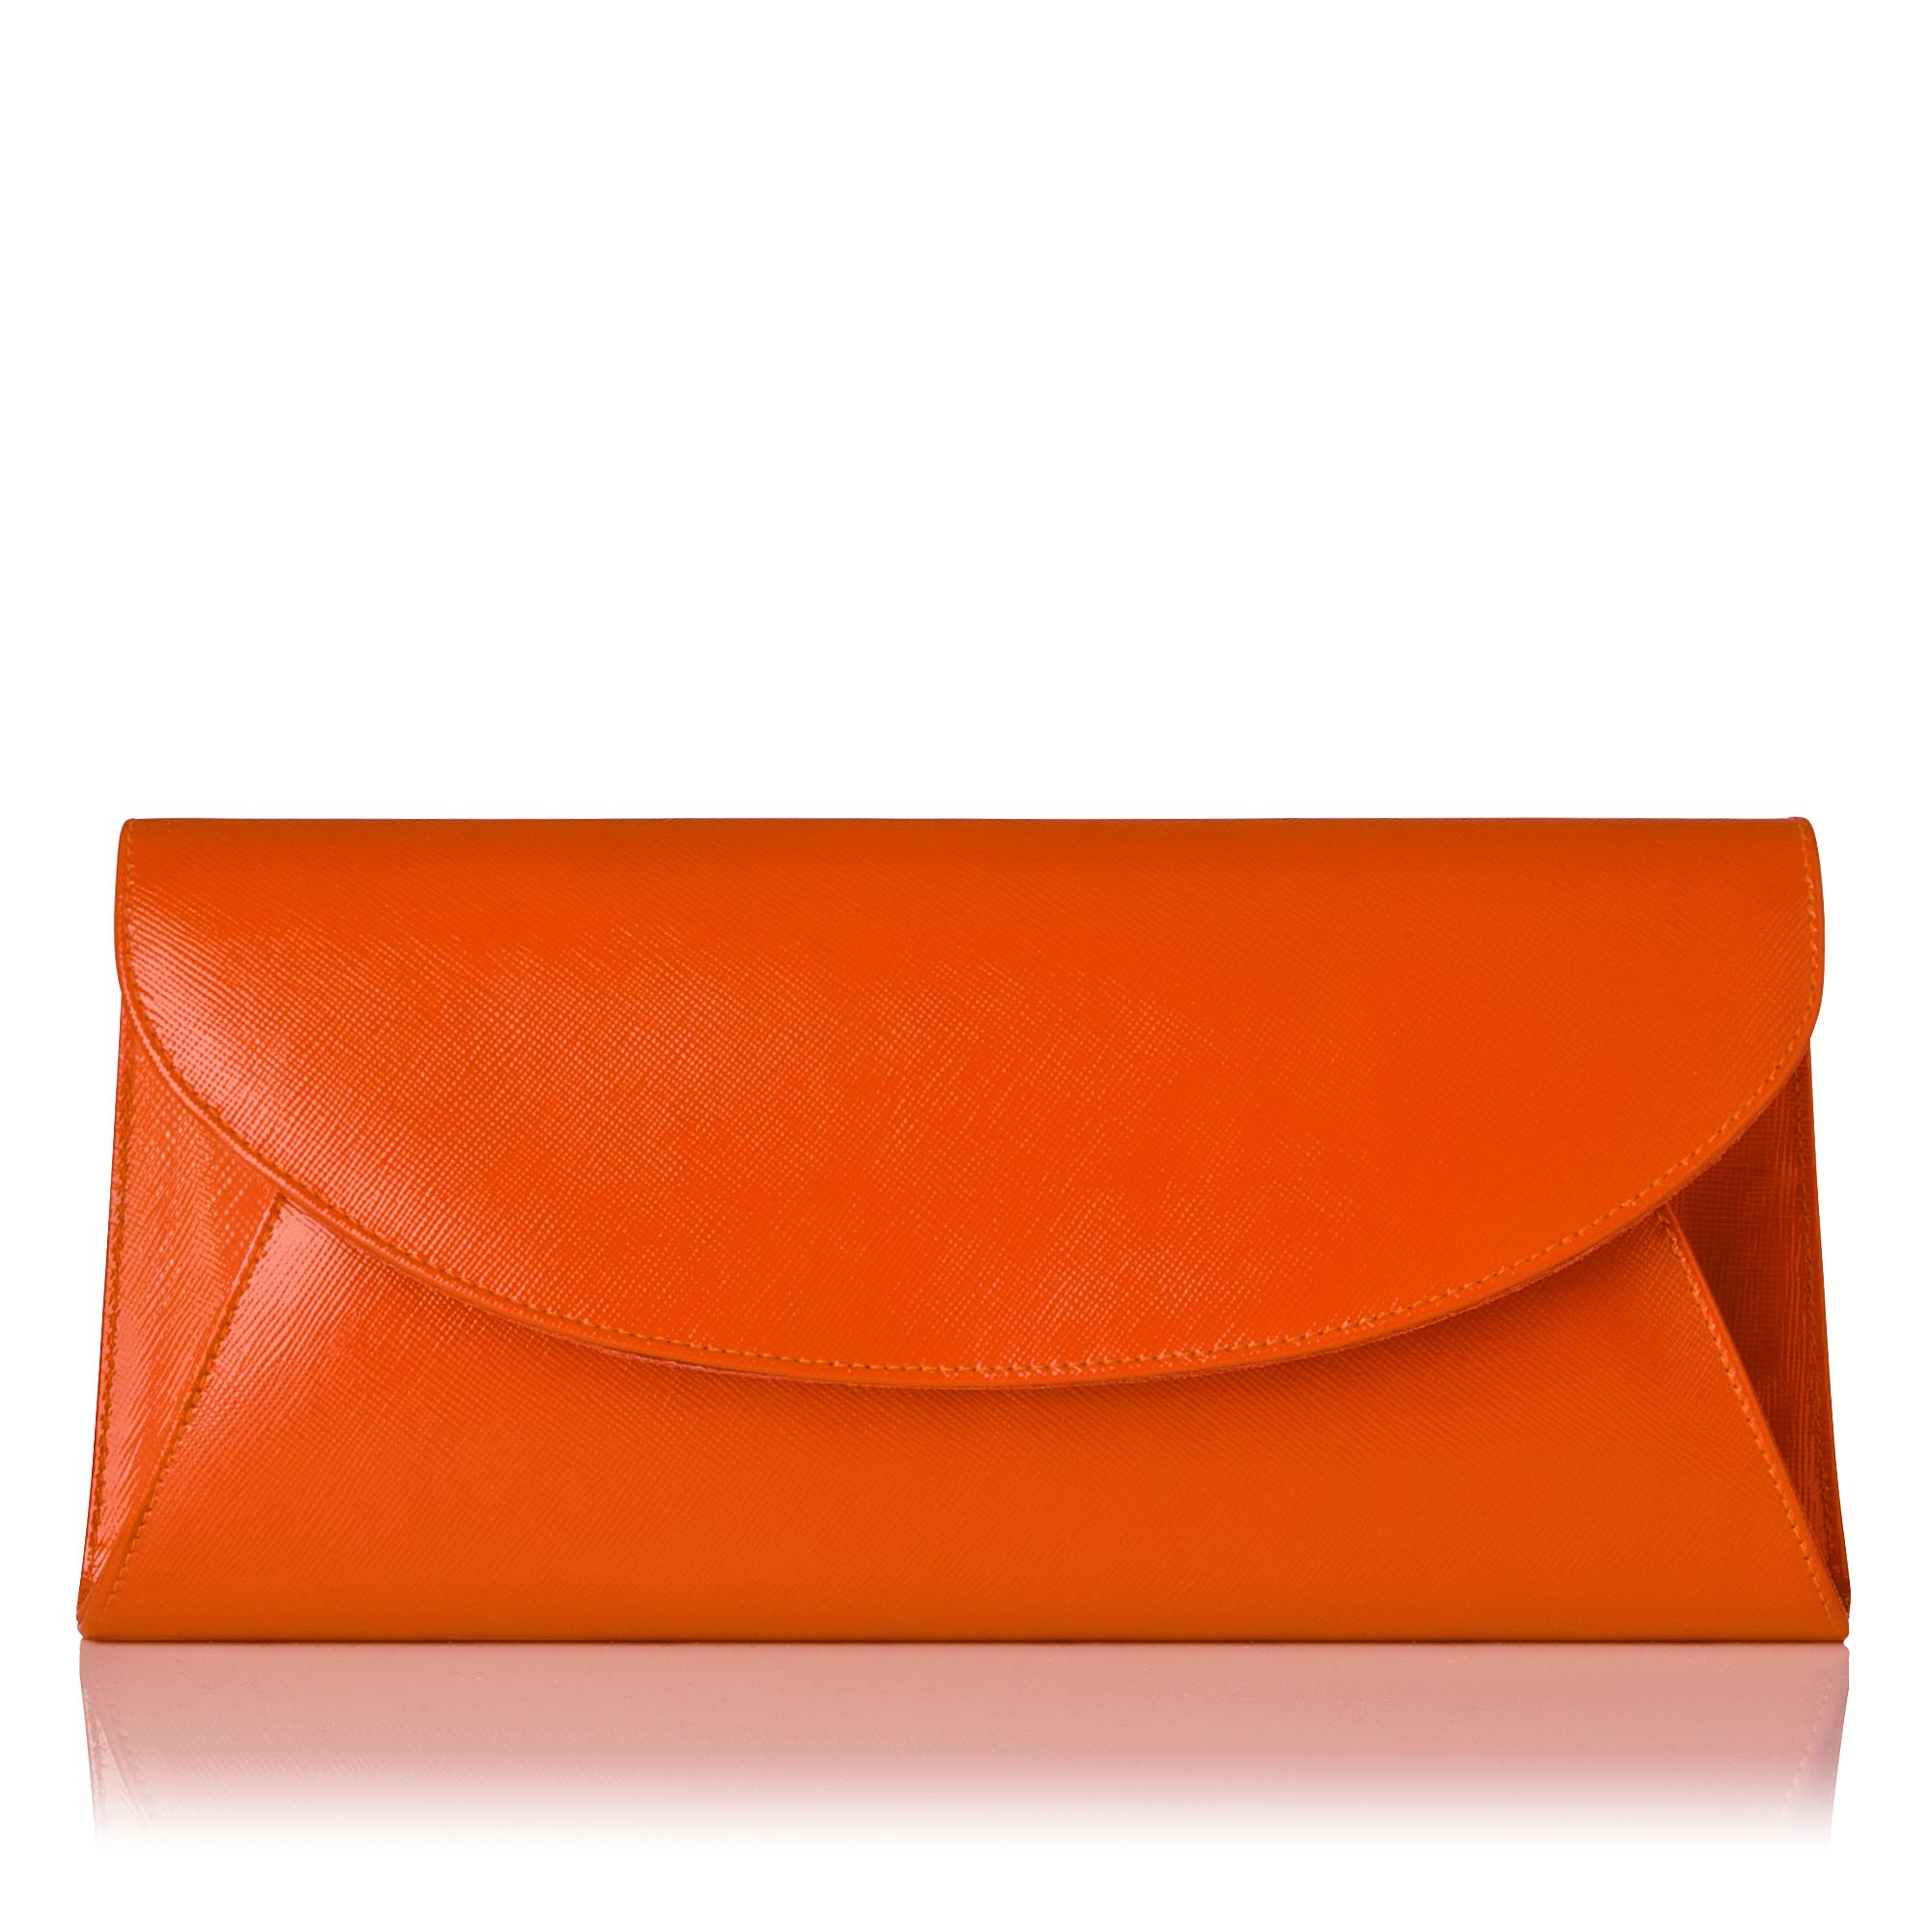 Flo patent leather envelope clutch bag